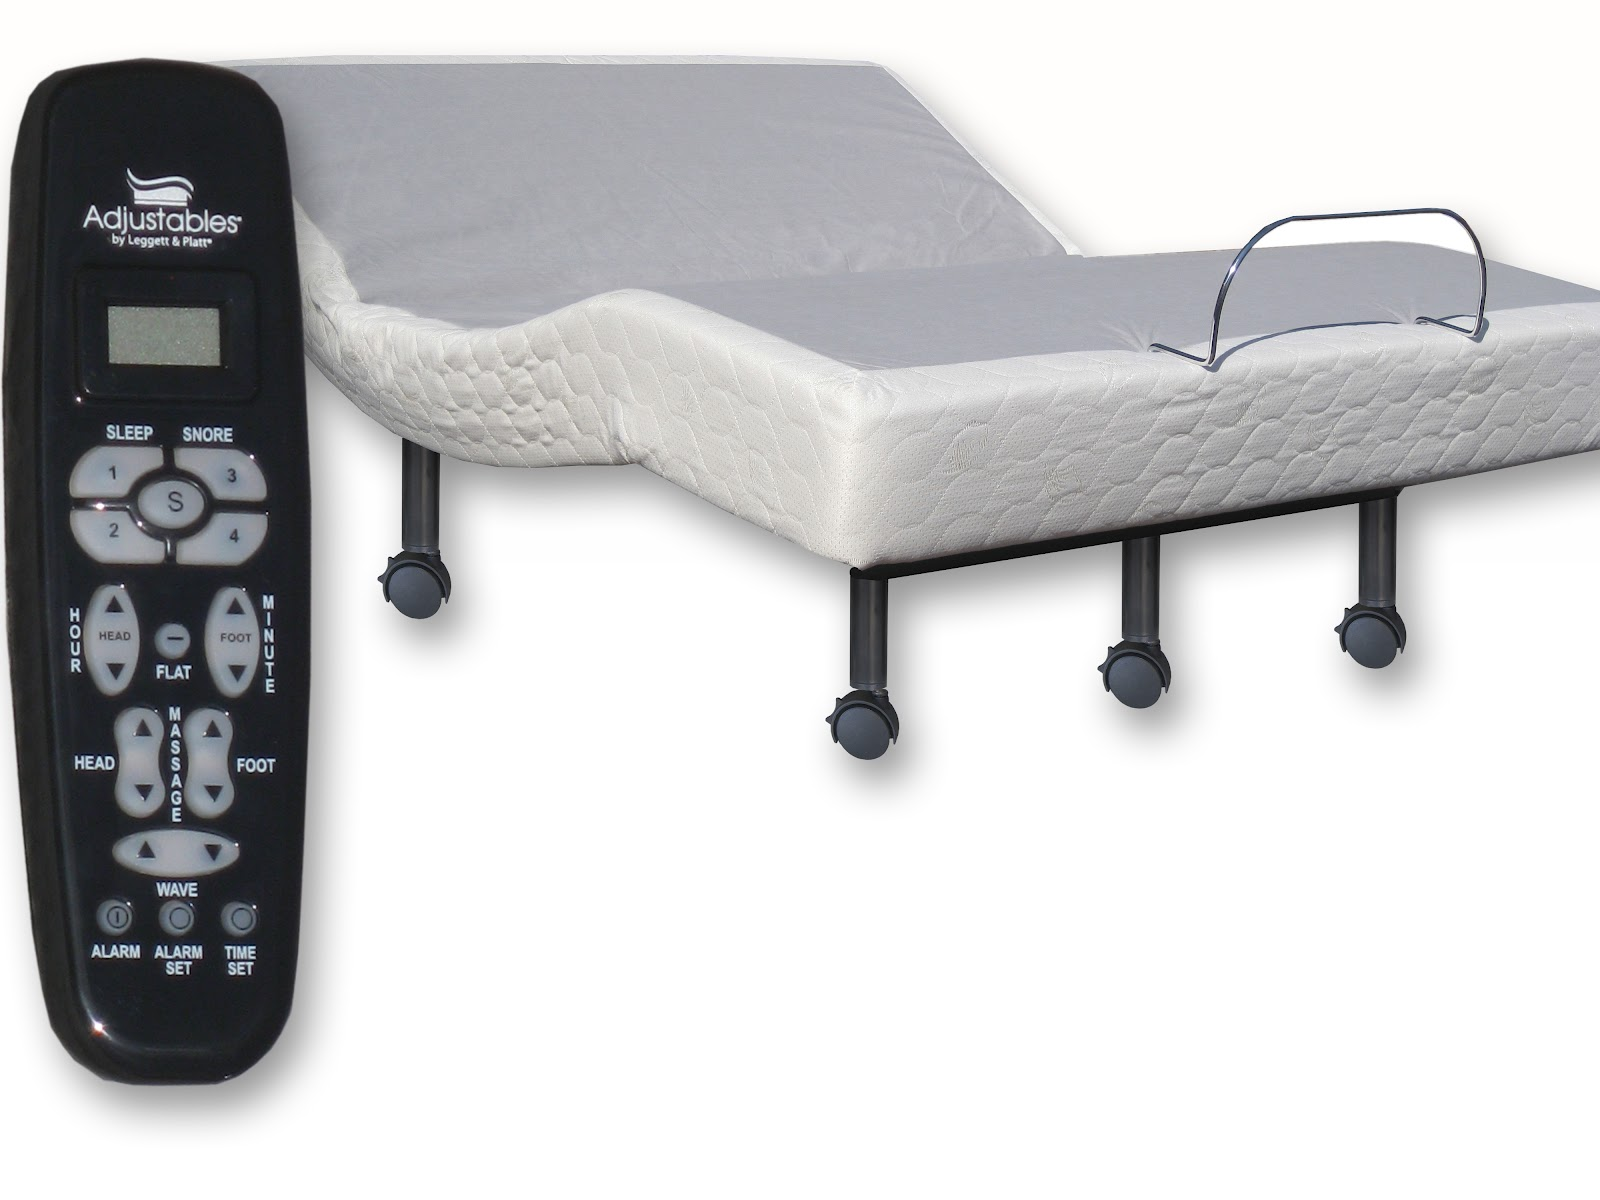 Craftmatic Adjustable Bed Replacement Parts : Craftmatic adjustable bed remote control replacement